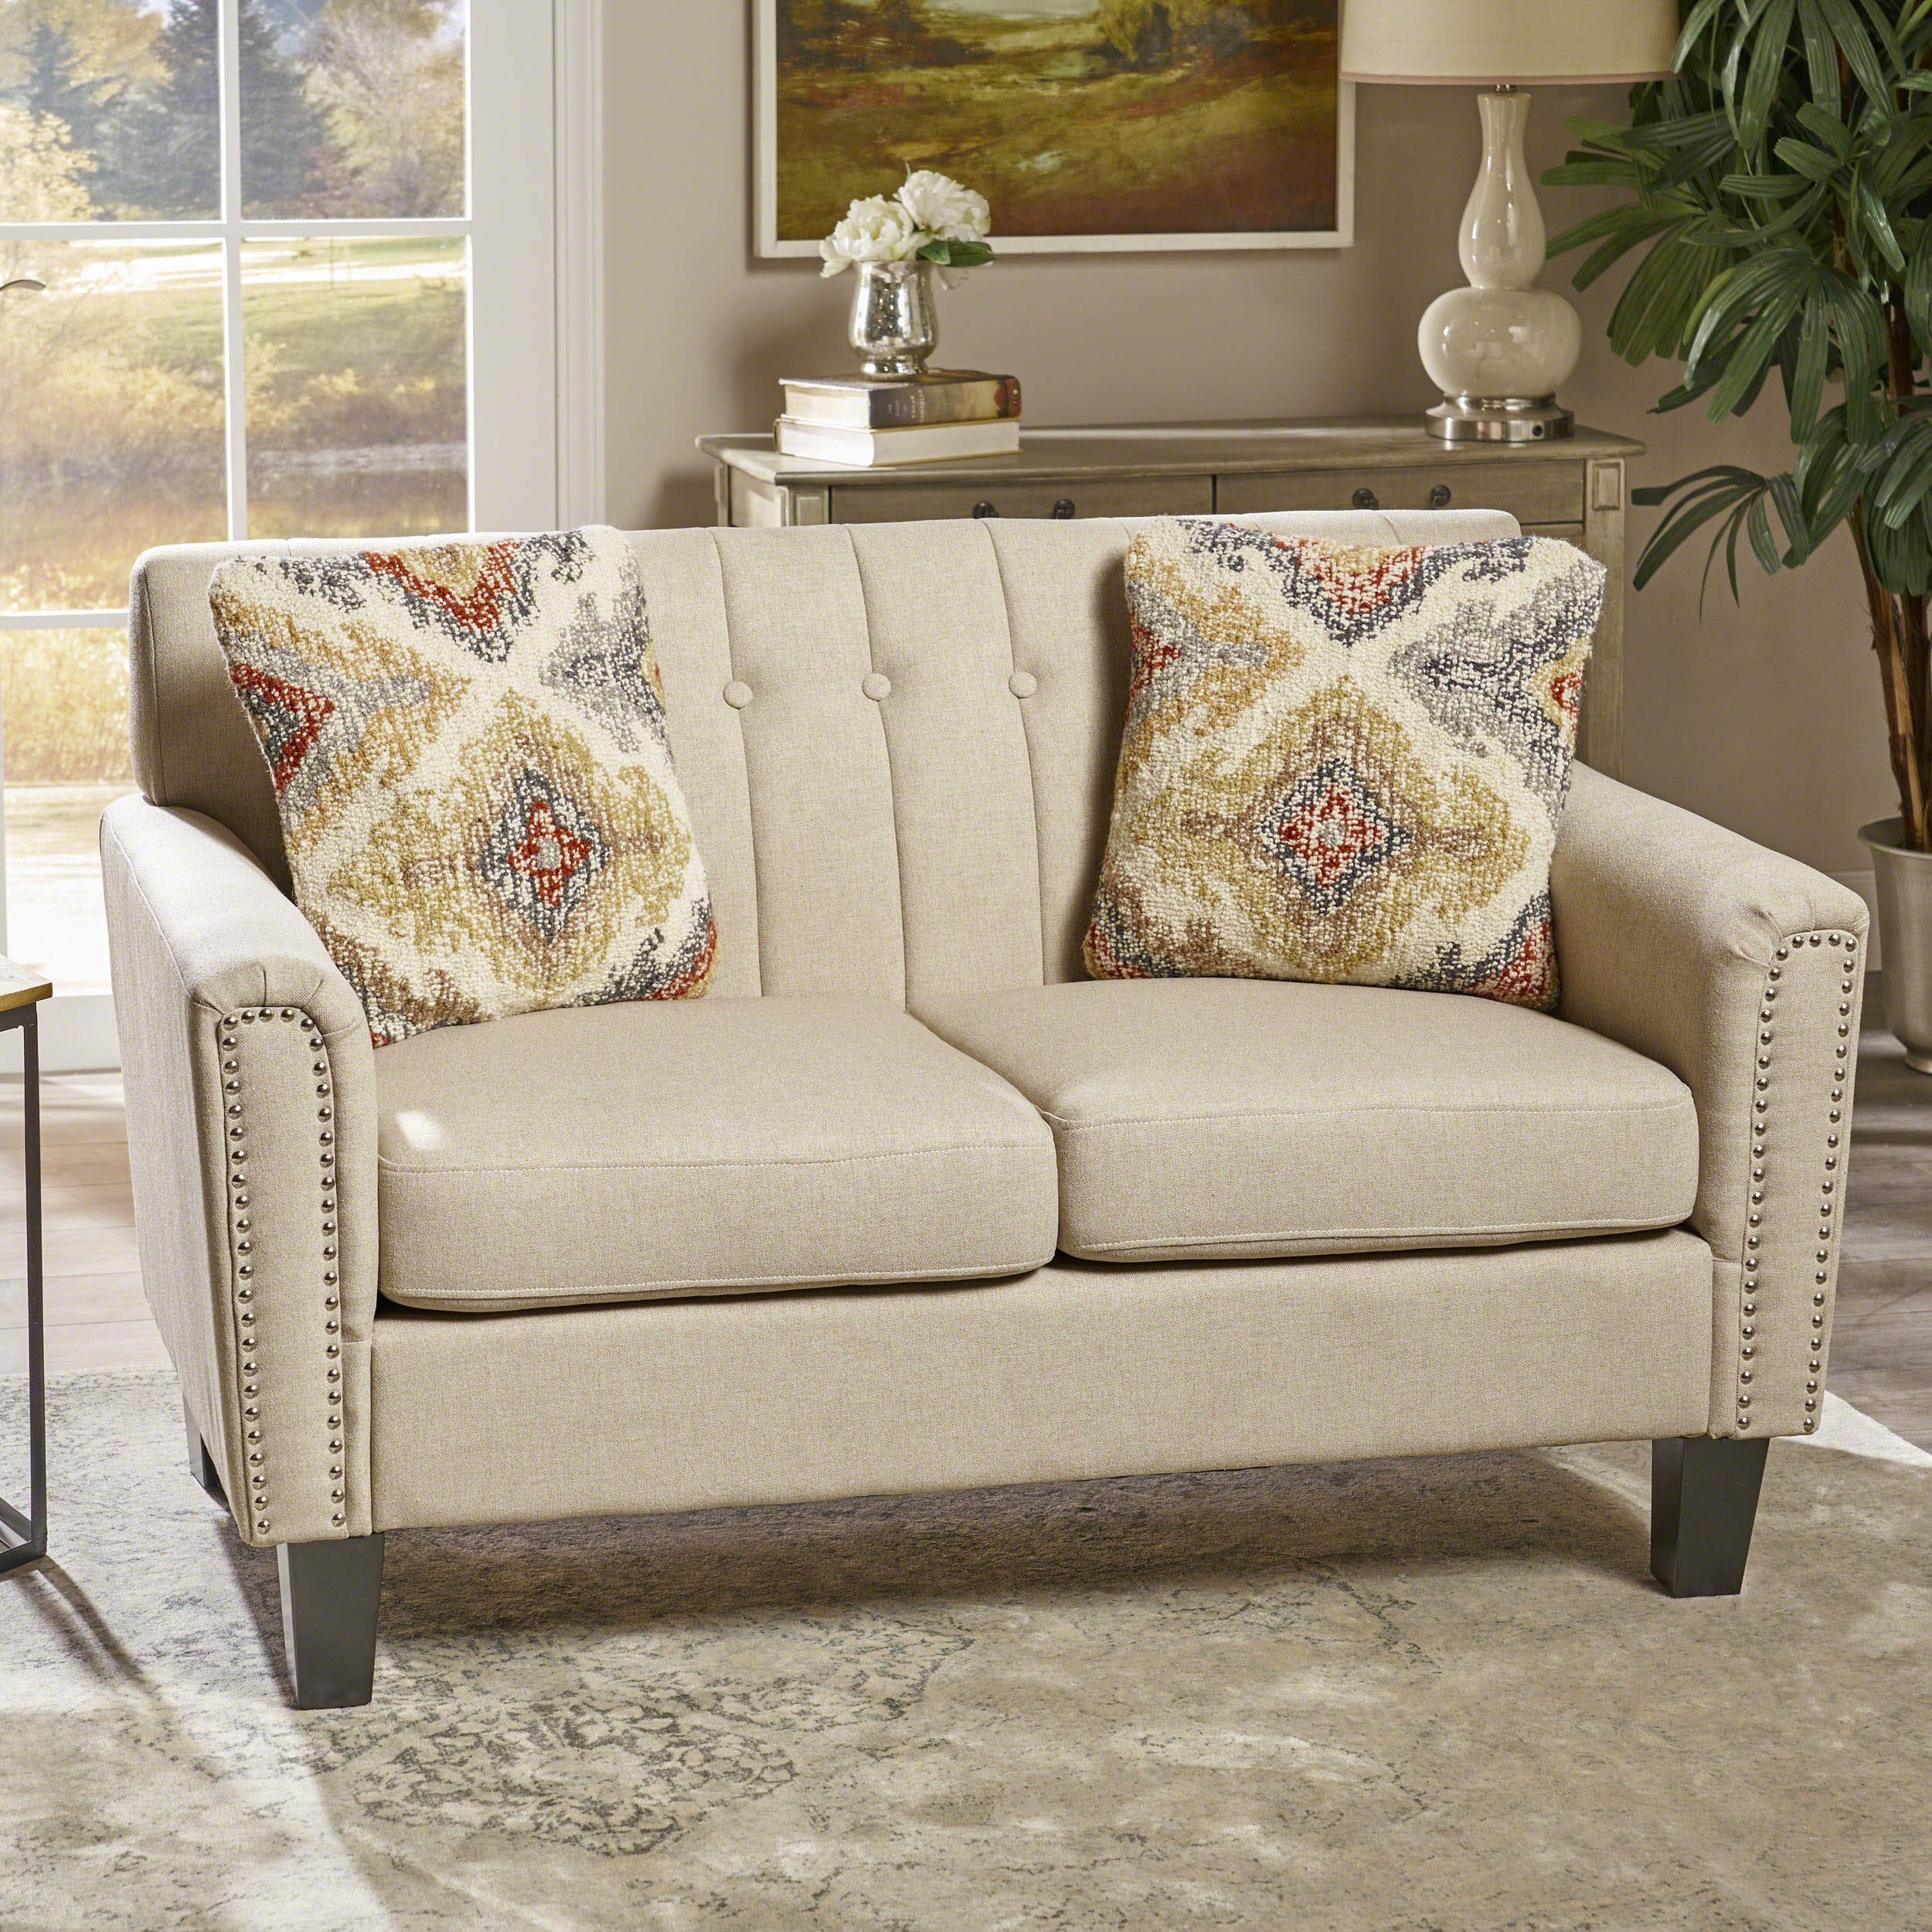 Noble House Juniper Traditional Fabric Loveseat,Wheat